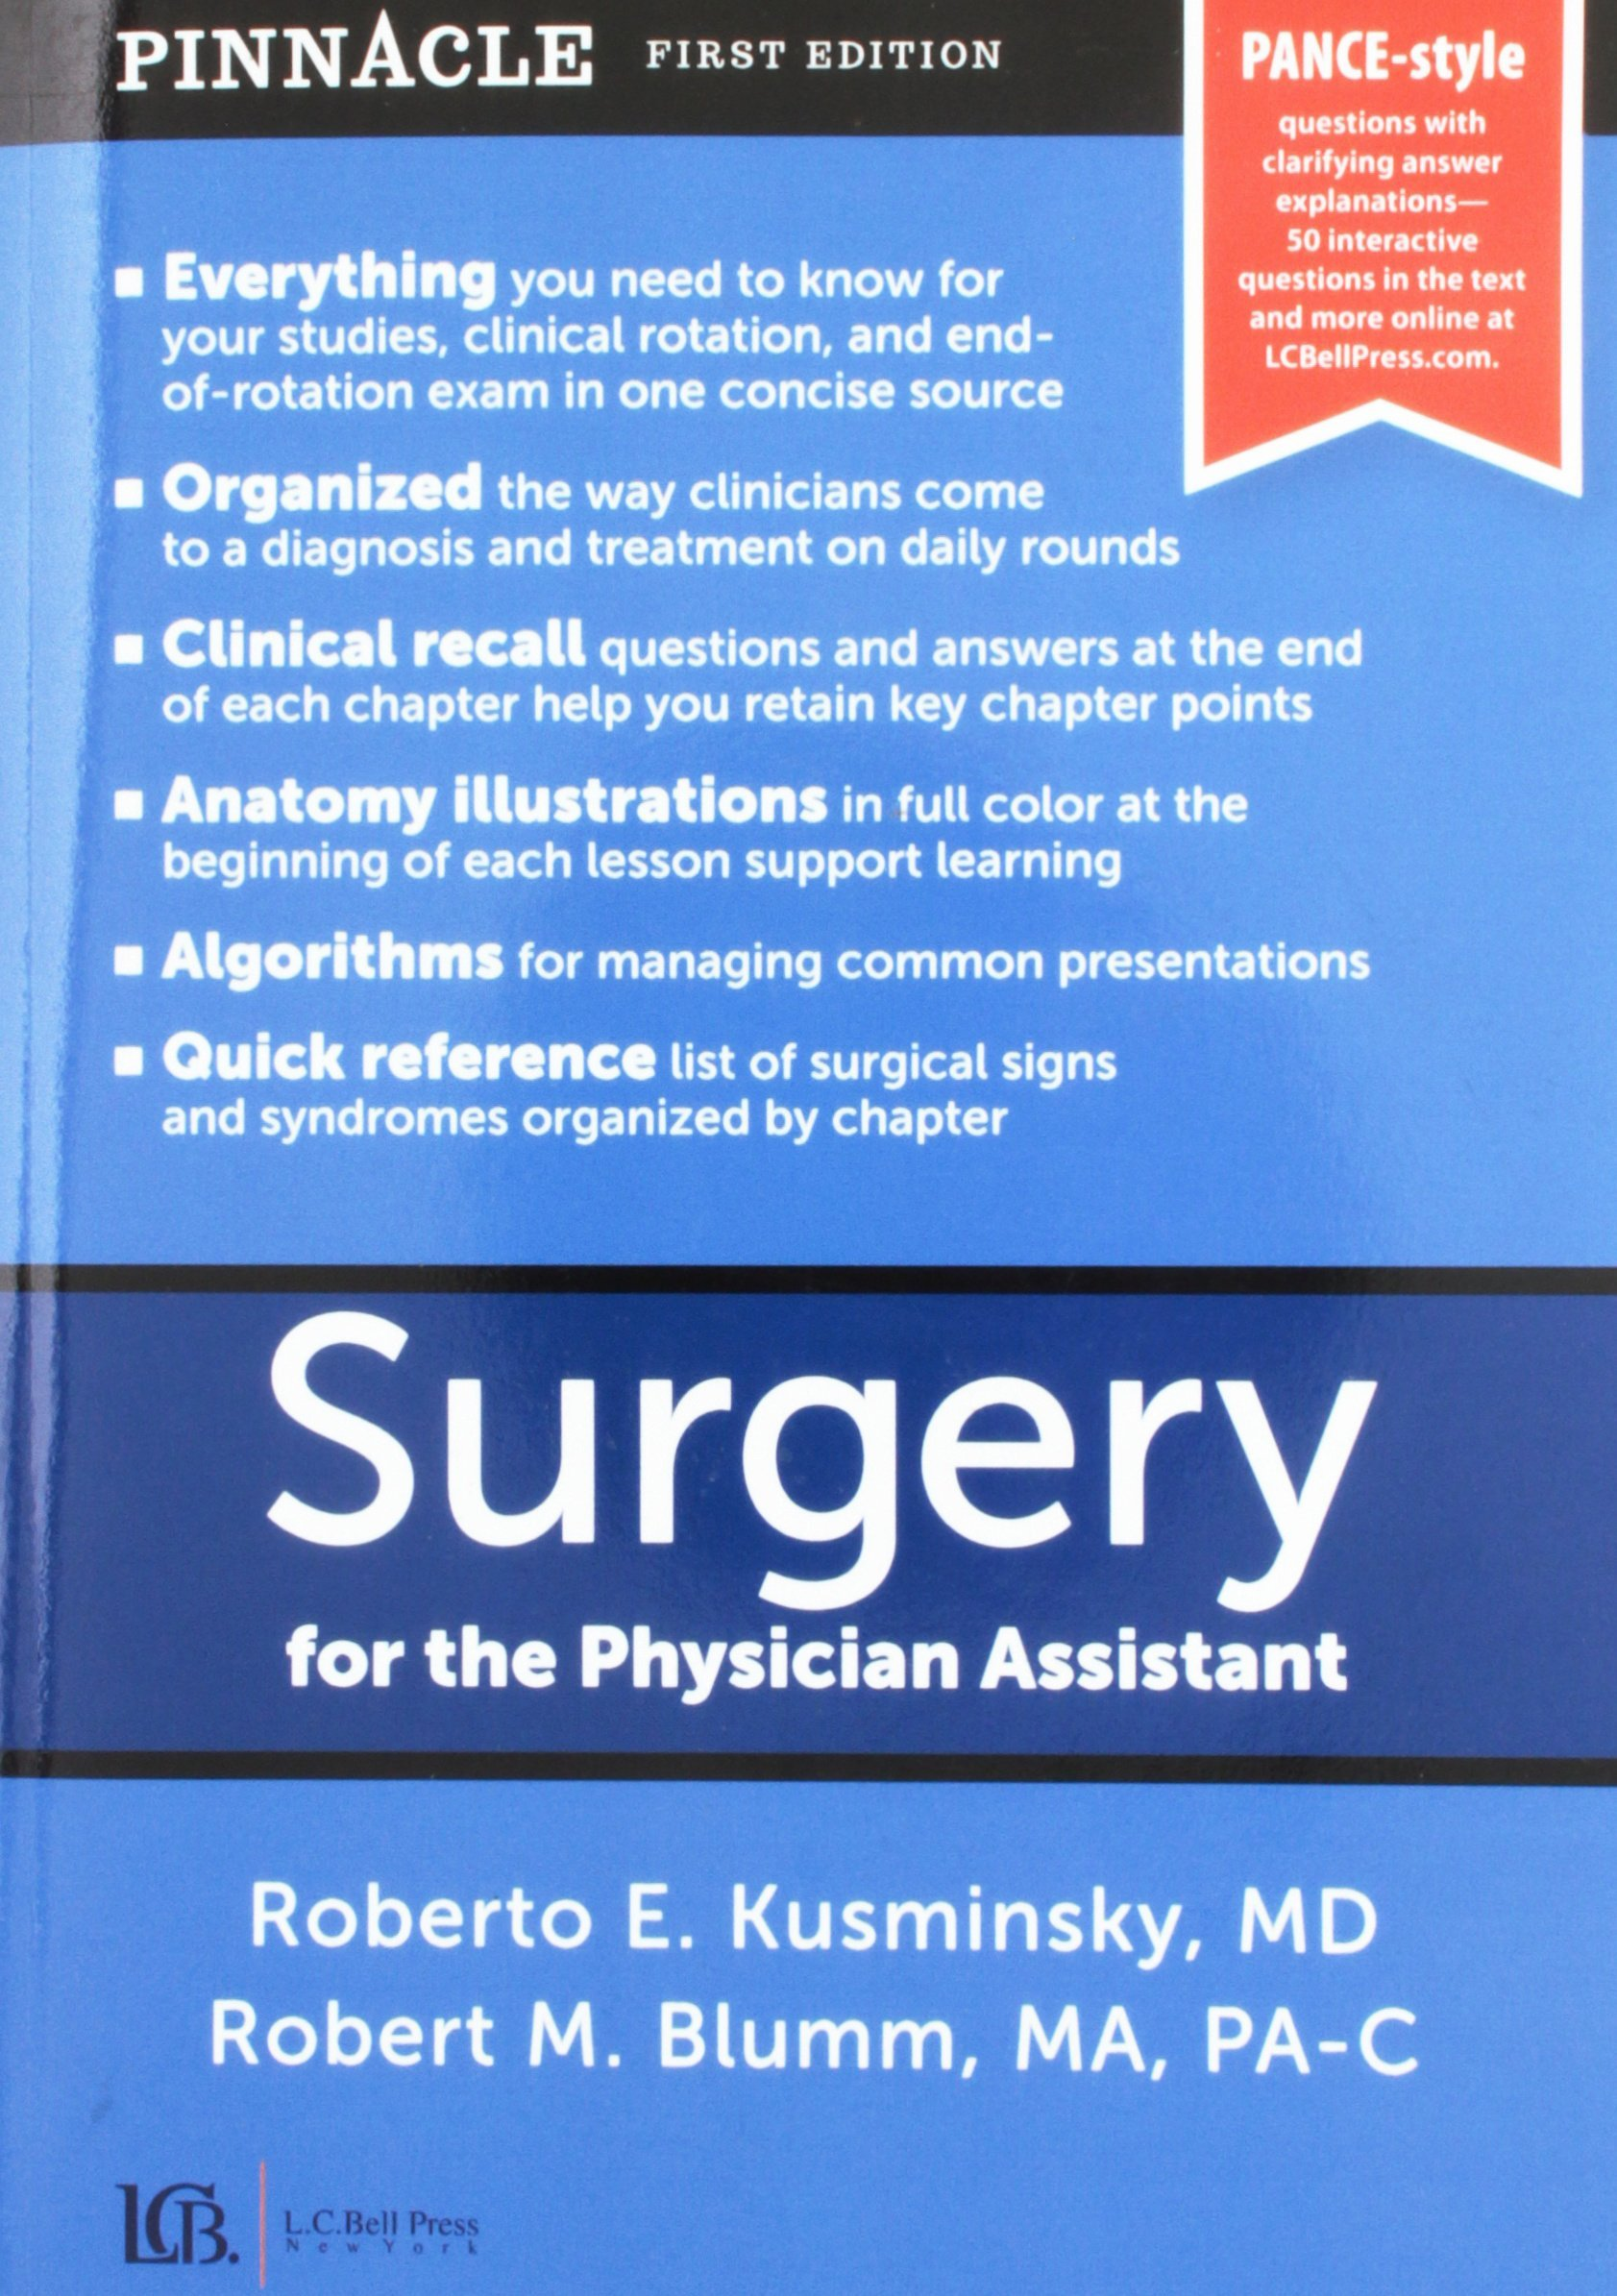 Surgery for the Physician Assistant: MD Roberto Kusminsky, MA, PA-C Robert  M. Blumm: 9780991316908: Amazon.com: Books